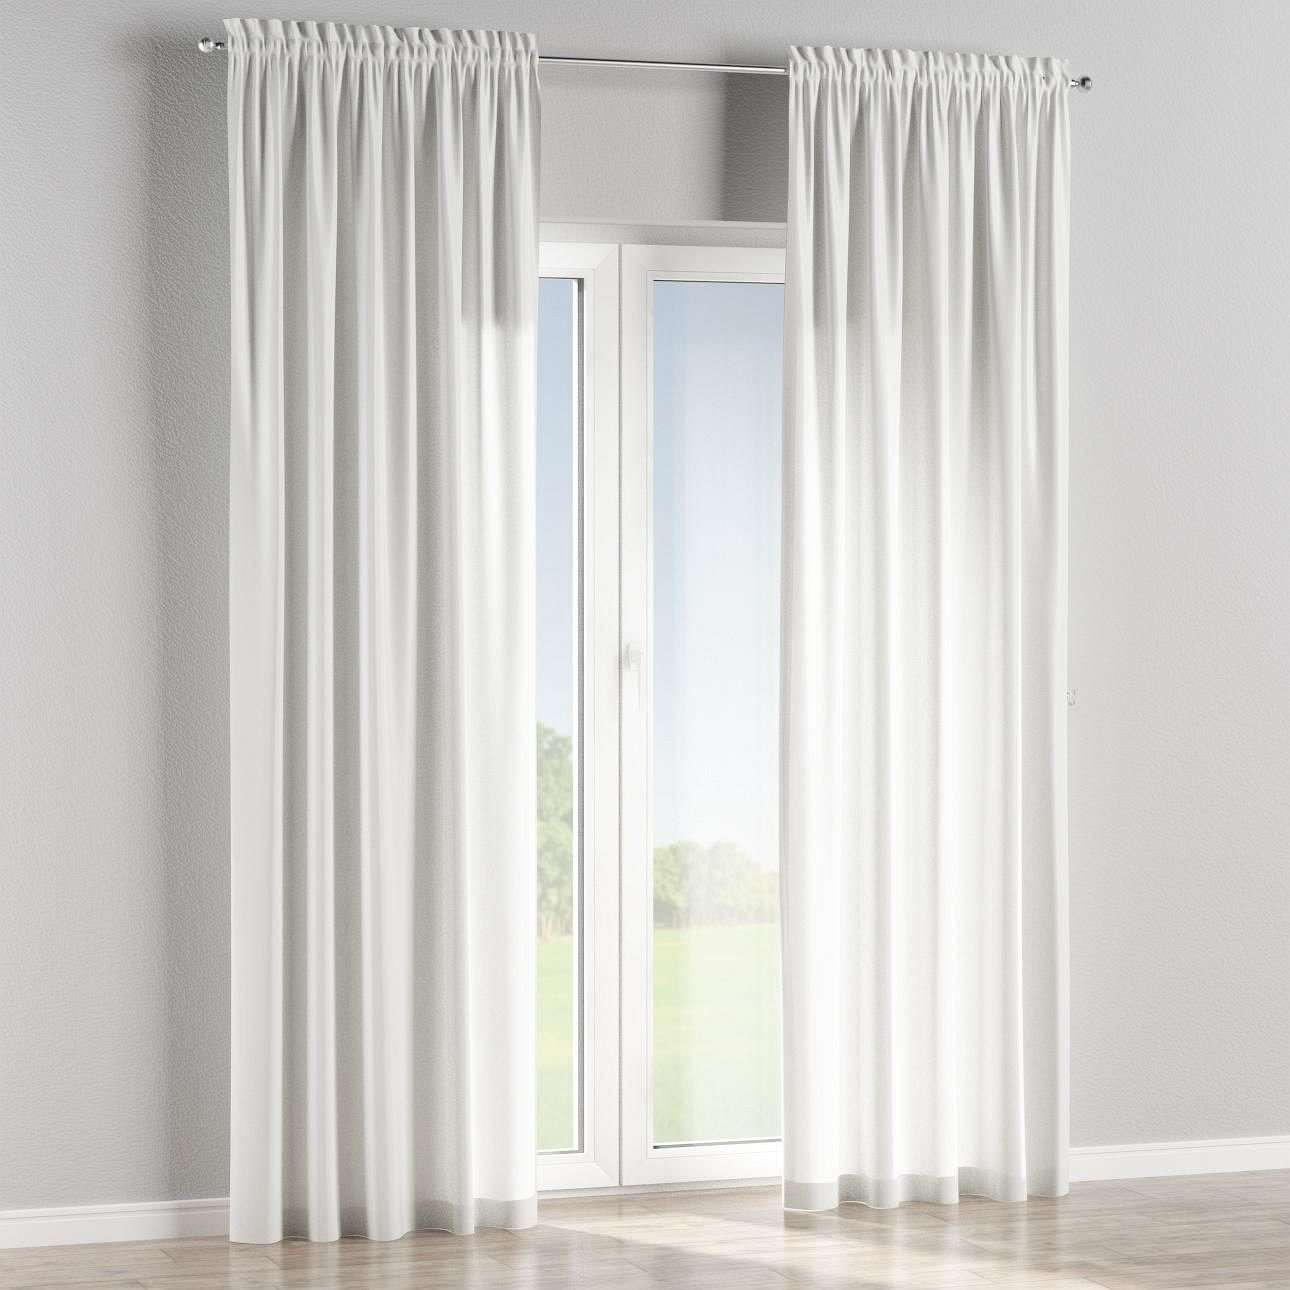 Slot and frill curtains in collection Taffeta , fabric: 103-95